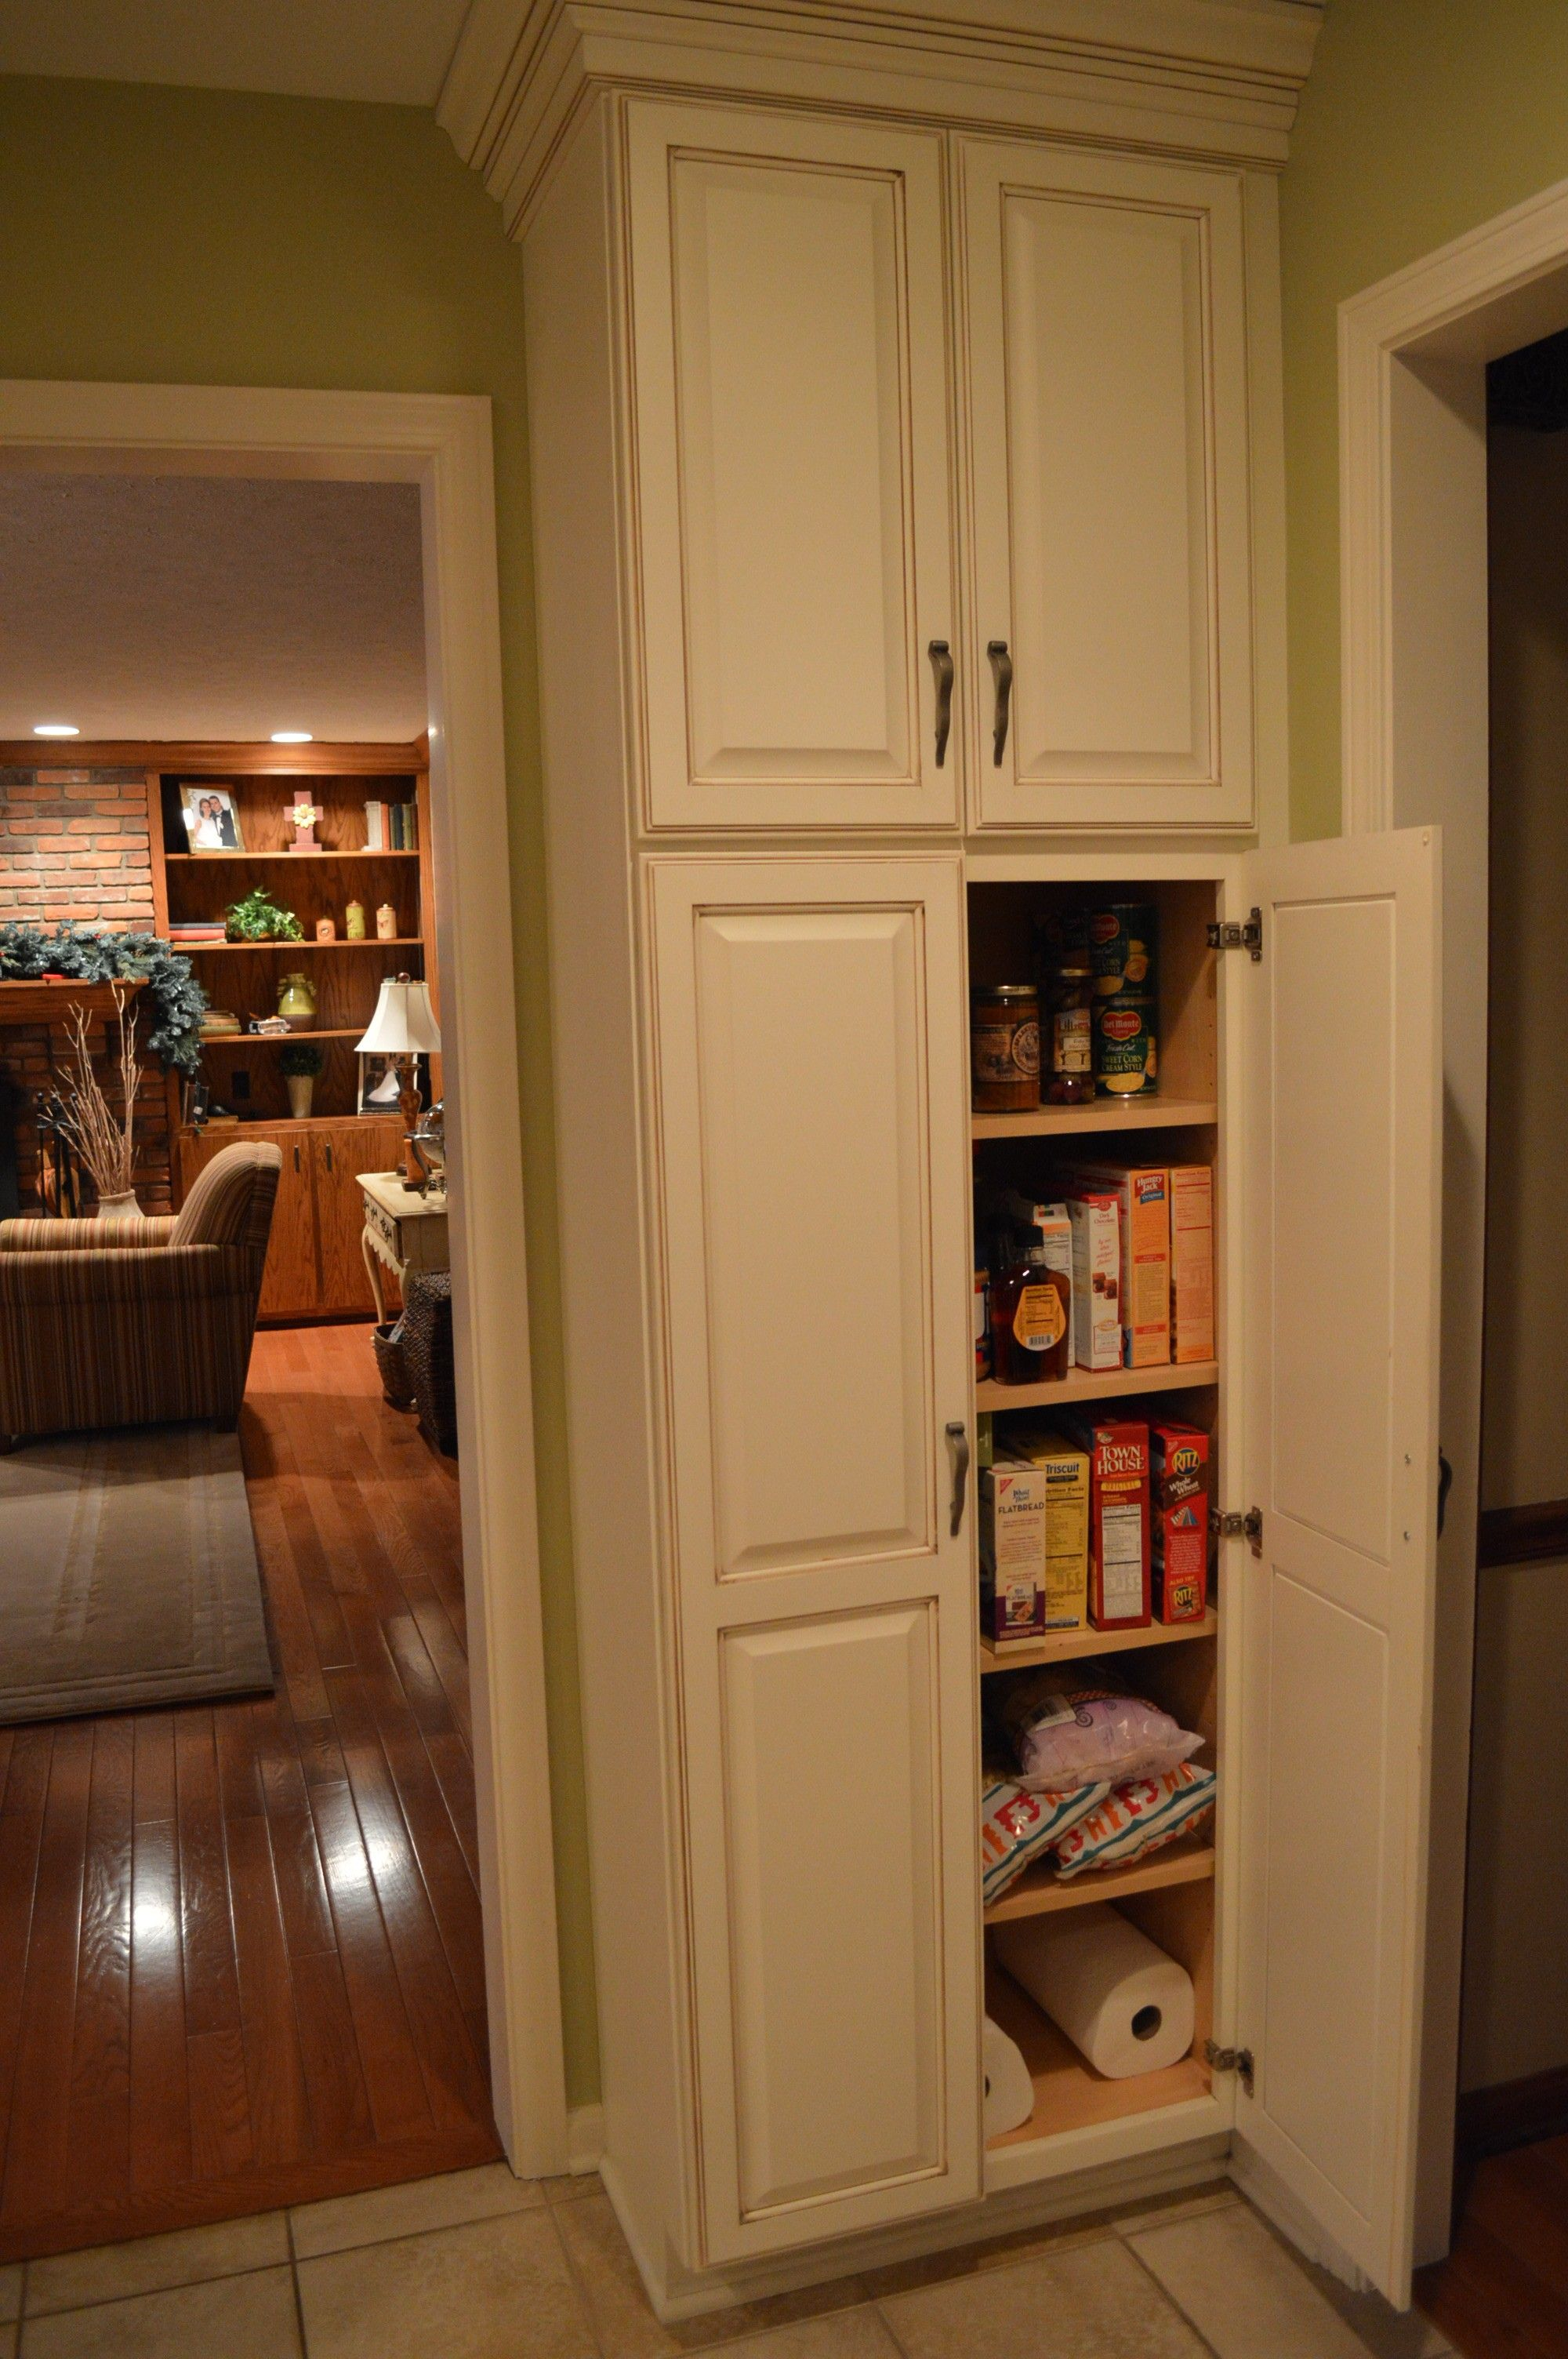 F White Wooden Tall Narrow Pantry Cabinet With Maple Wood Shelves And Door Panel Kitchen Sseventdesign Co